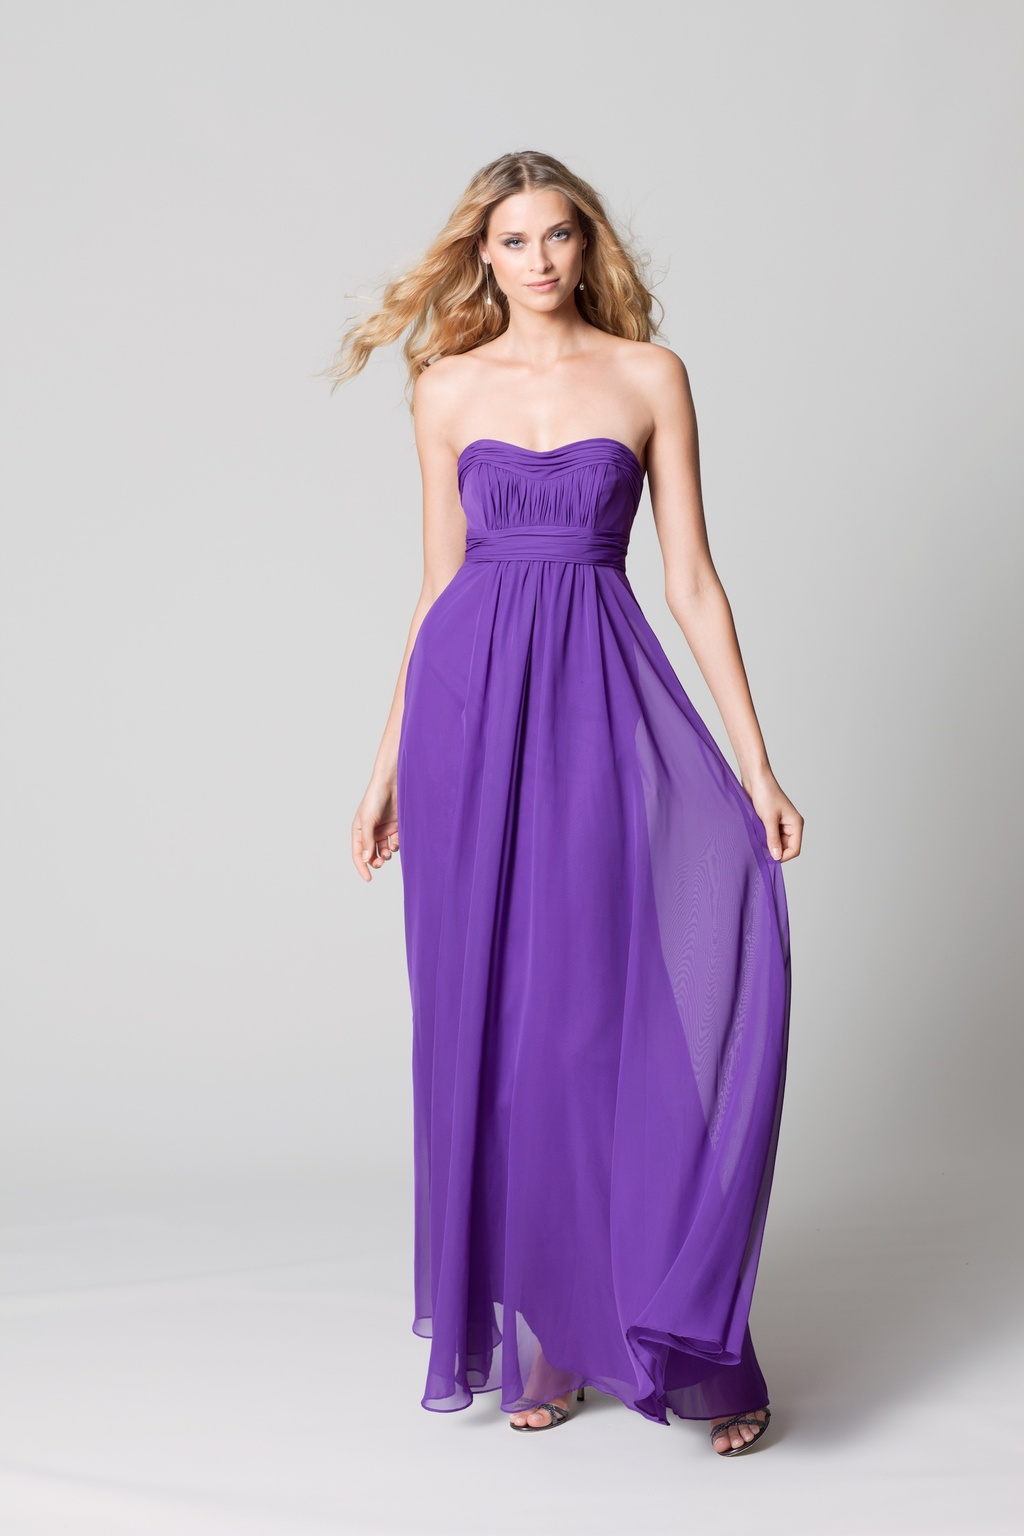 Affordable-bridesmaids-dresses-fall-2012-wtoo-by-watters-bridal-party-bright-purple-chiffon.full